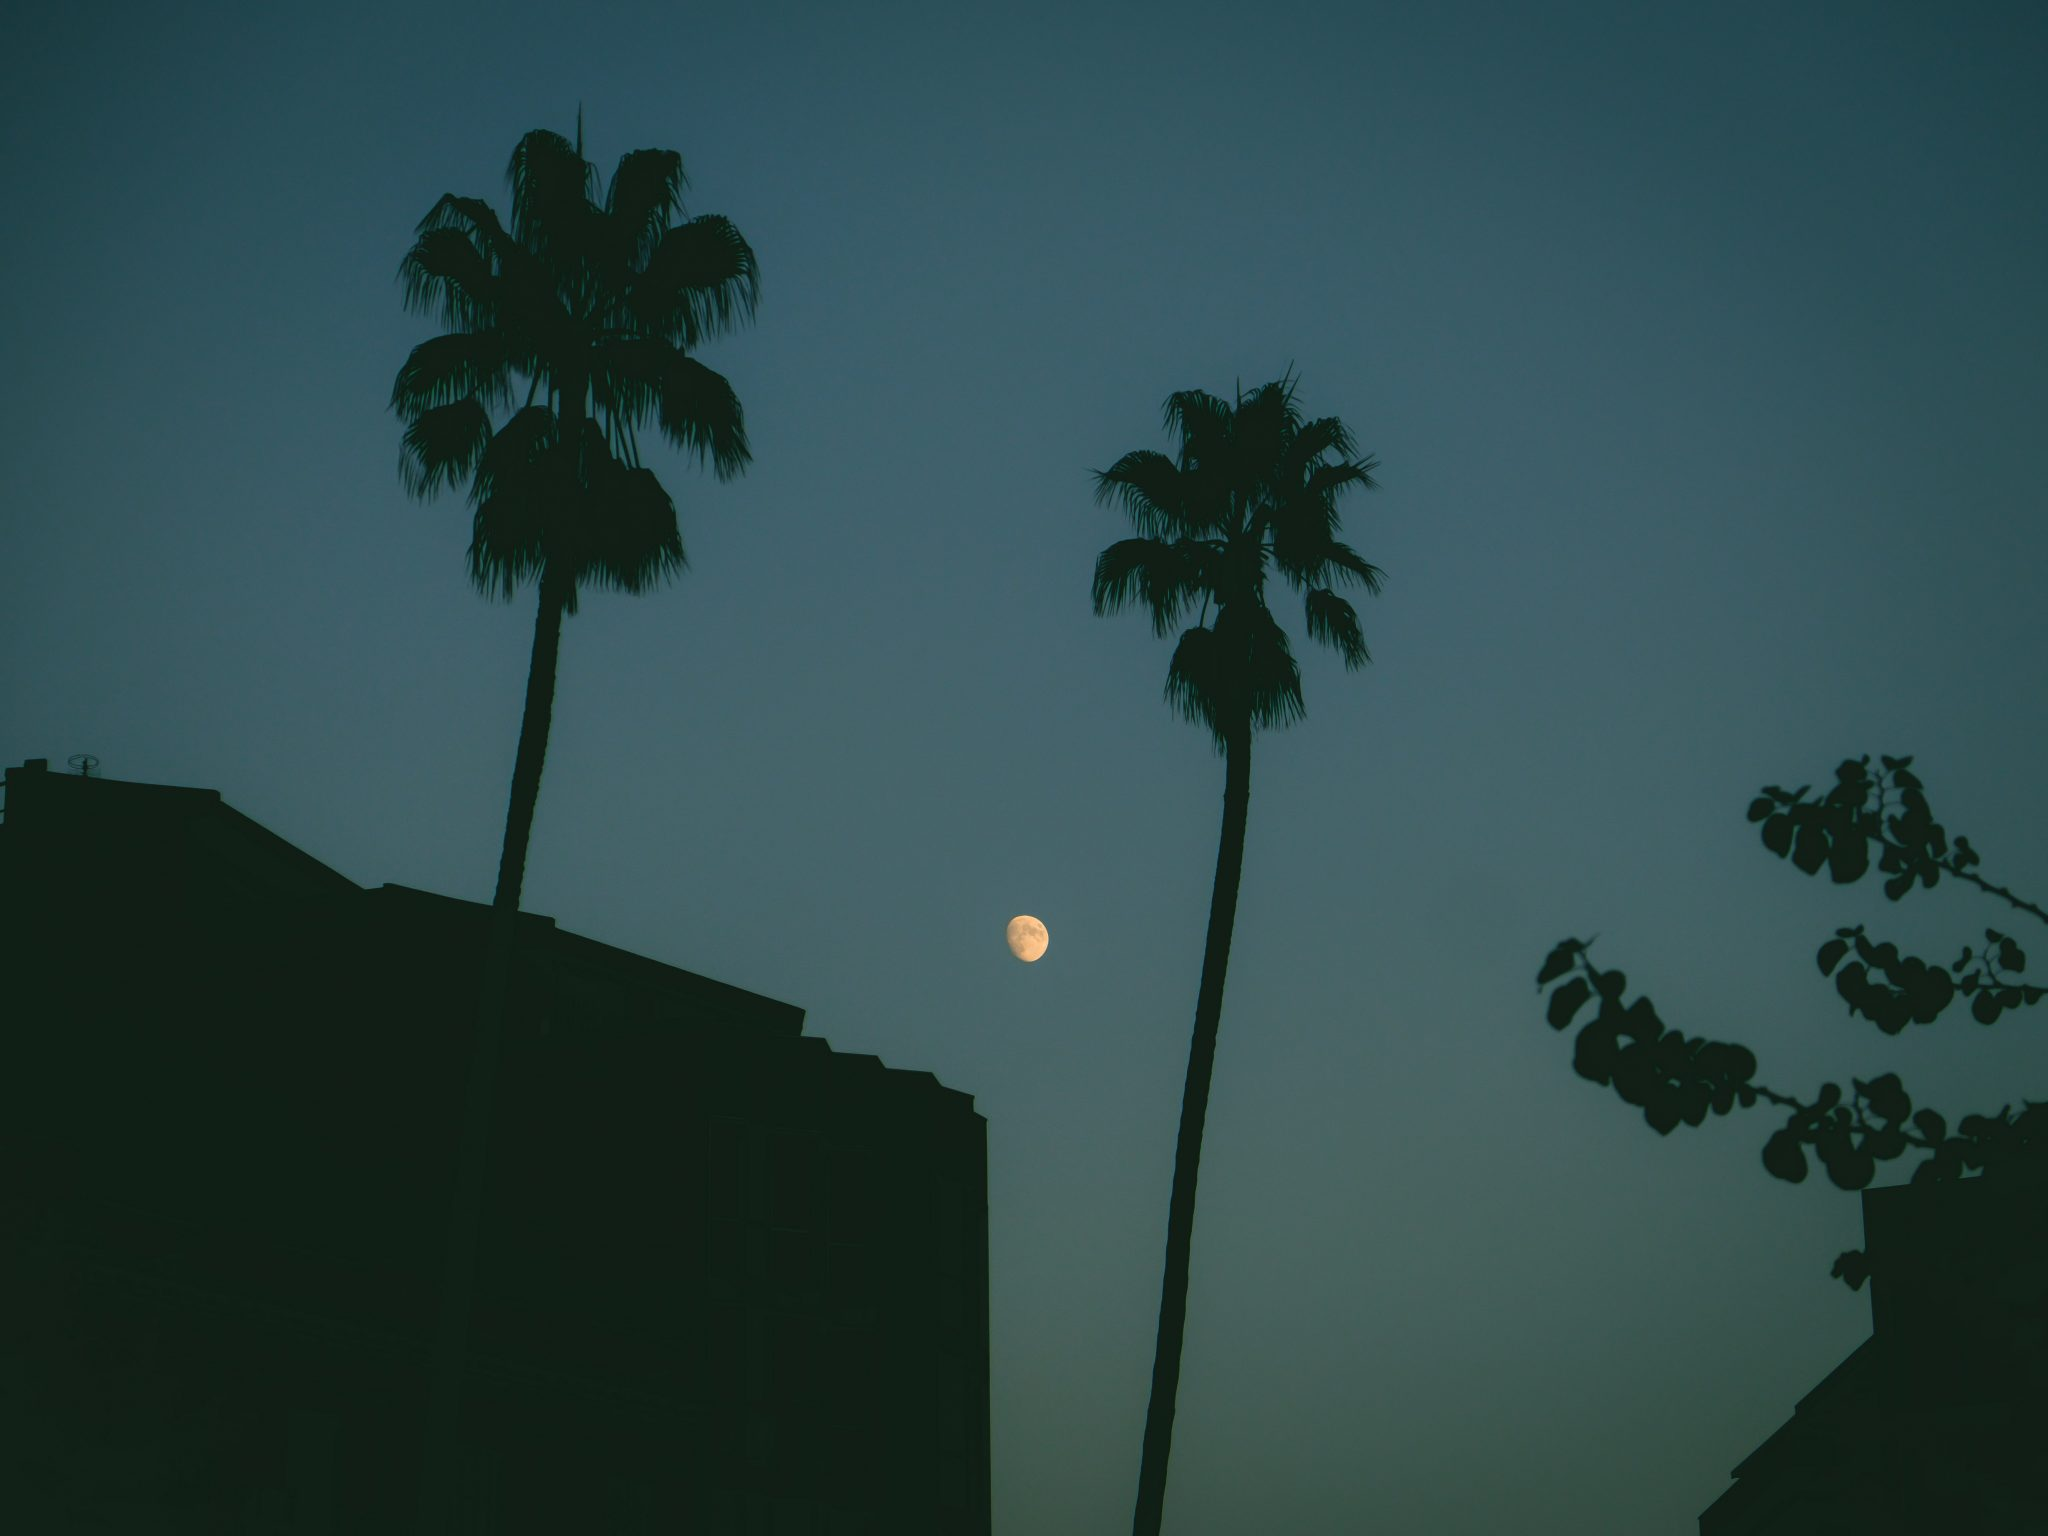 Silhouette of palm trees at night with the moon in the background photo by Jo Kassis